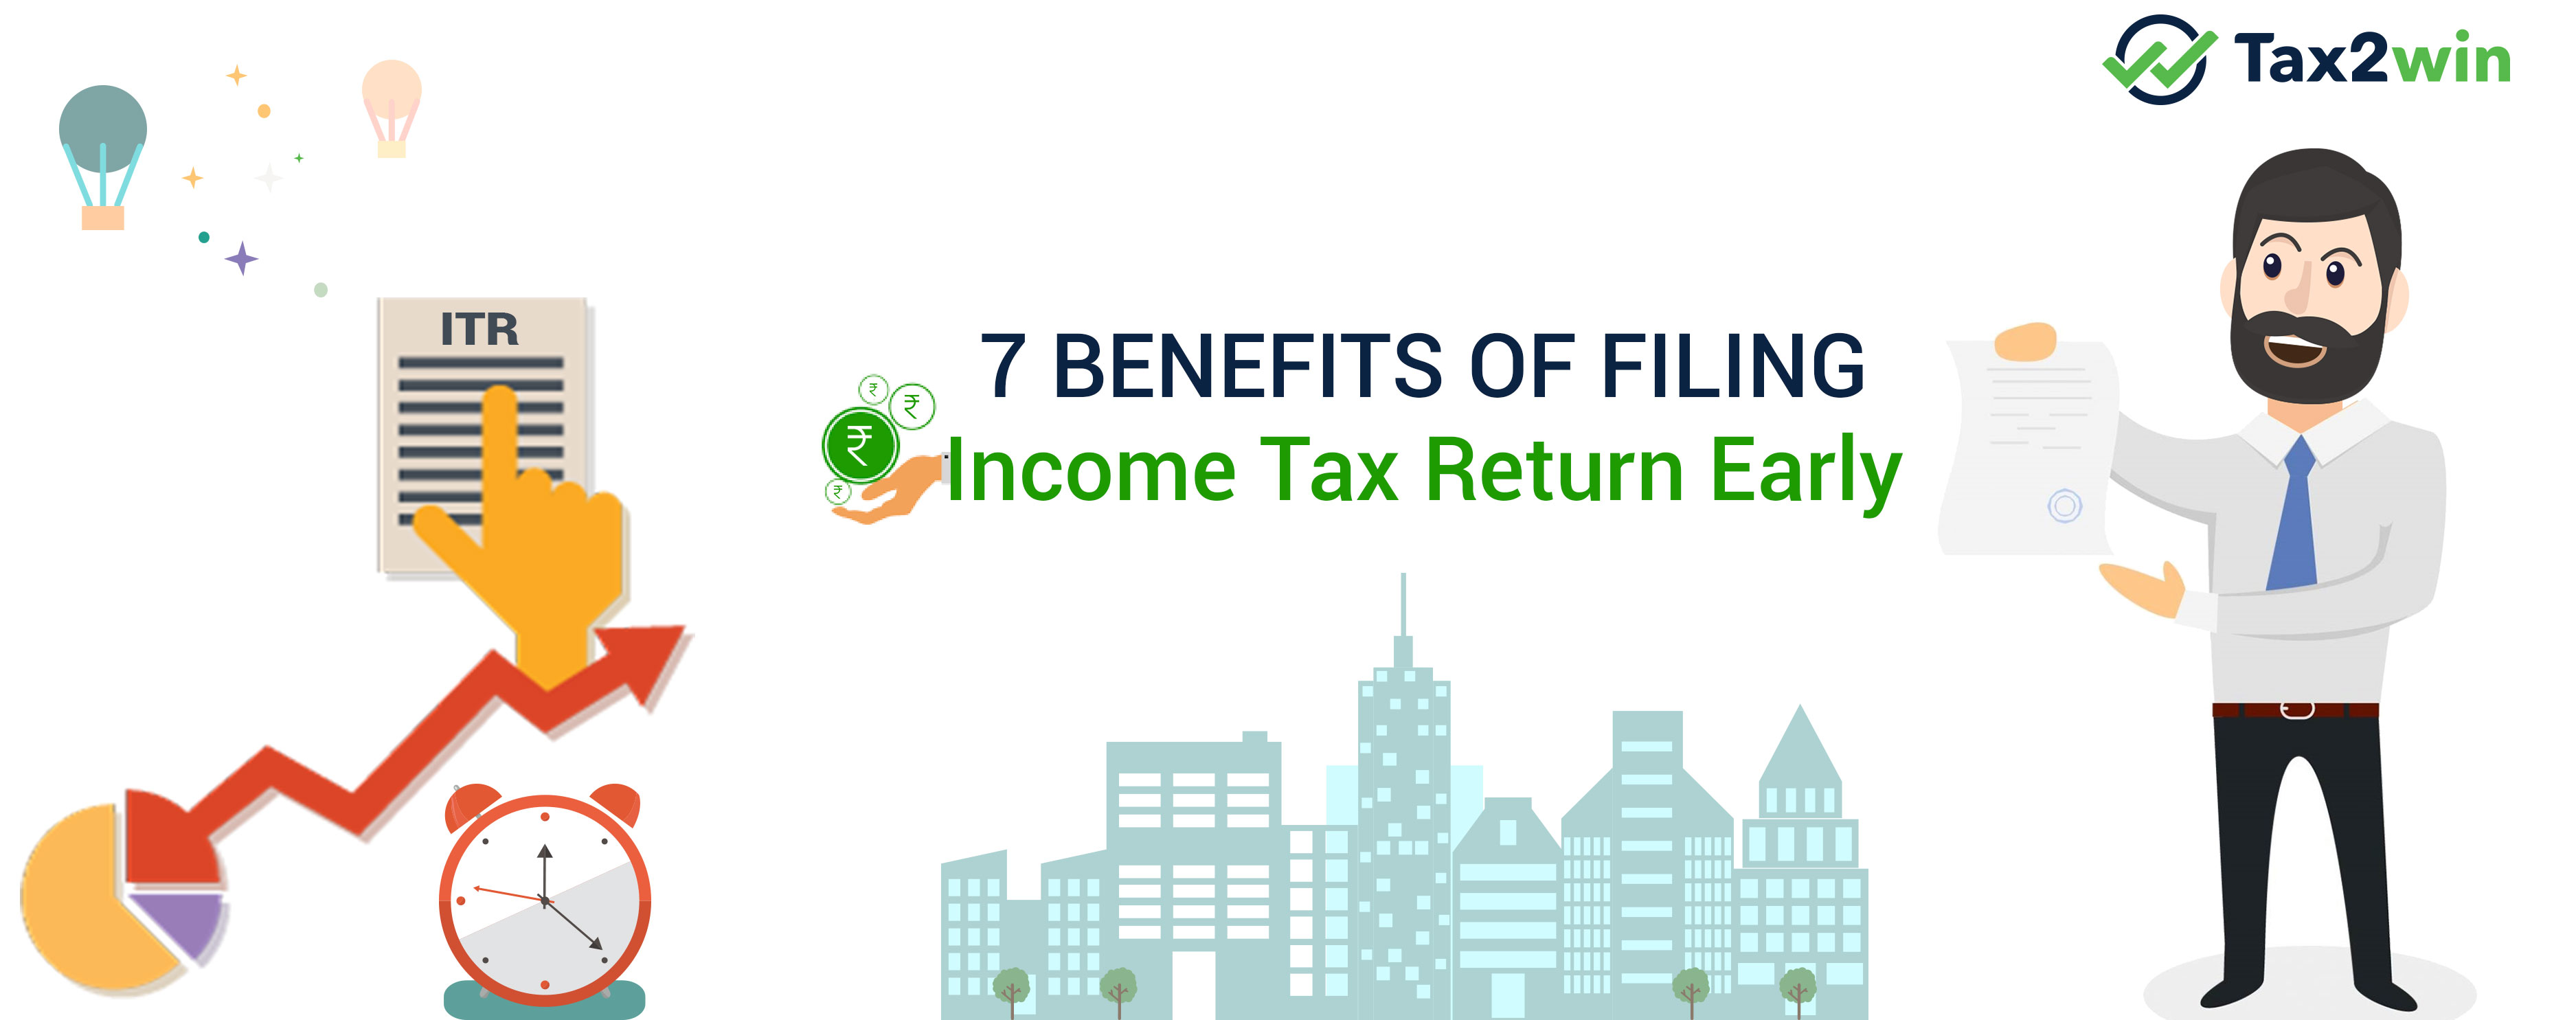 7 Benefits of Filing Income Tax Return Early